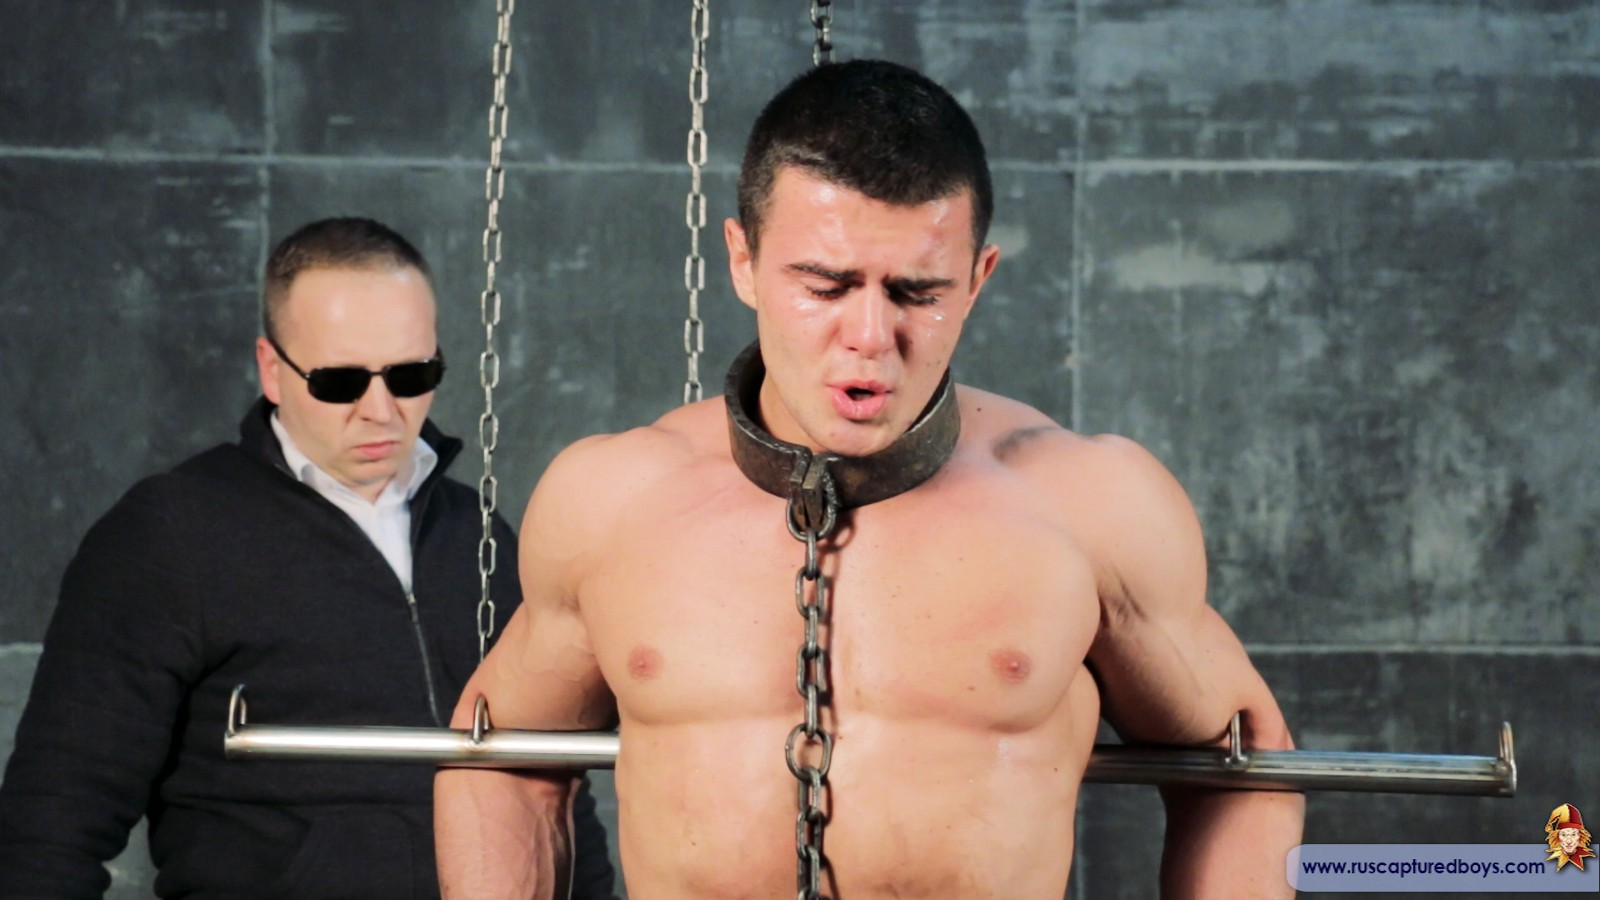 Chained up in heavy irons and tortured